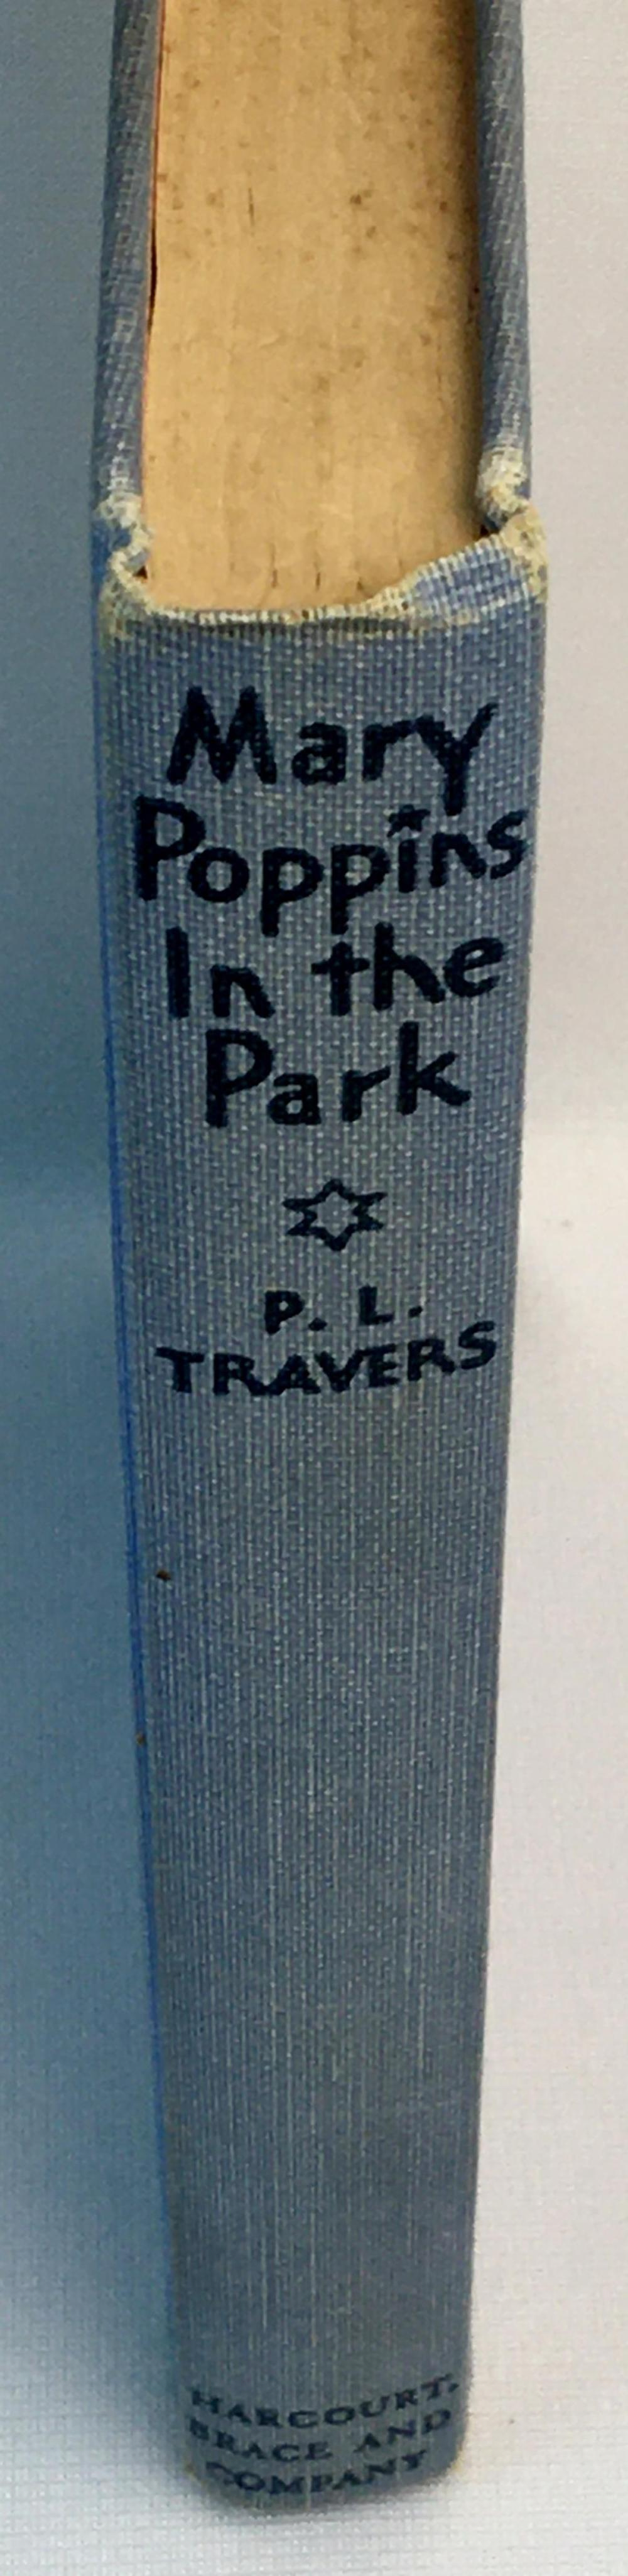 1952 Mary Poppins In The Park by P.L.Cravers Illustrated FIRST AMERICAN EDITION